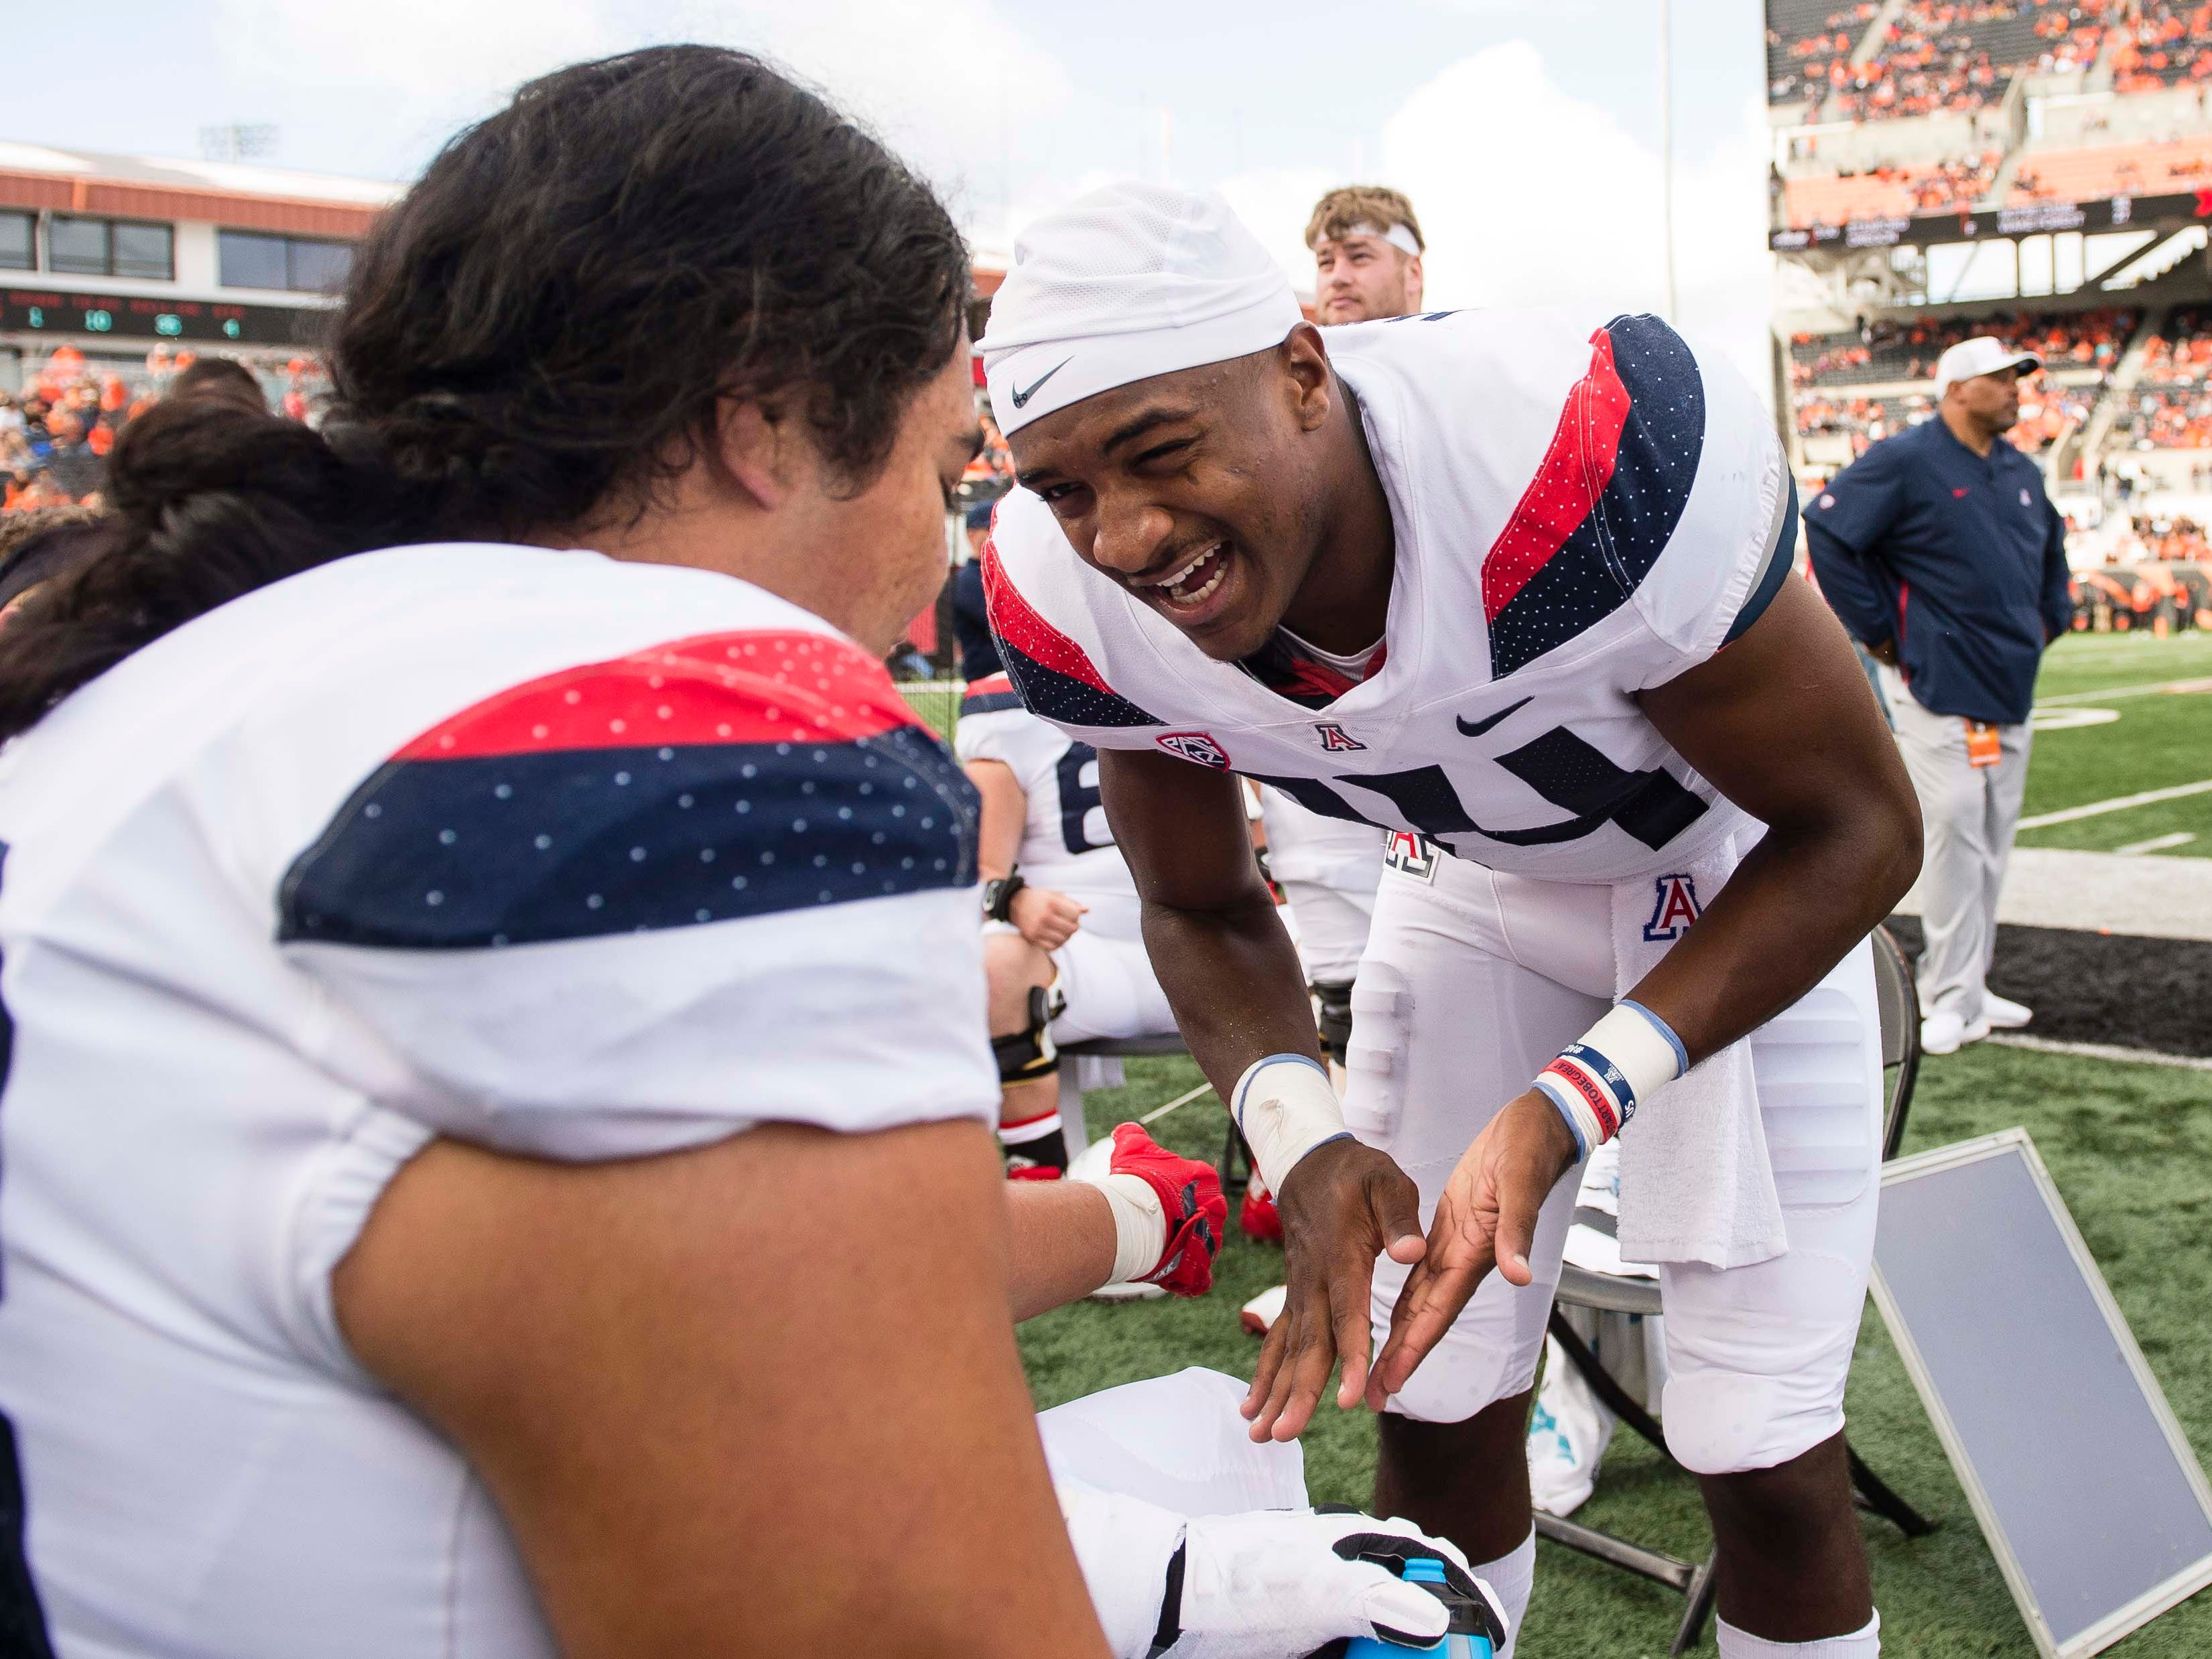 Sep 22, 2018; Corvallis, OR, USA; Arizona Wildcats quarterback Khalil Tate (14) talks with his teammates on the sidelines during the second half against the Oregon State Beavers at Reser Stadium. The Arizona Wildcats won 35-14.